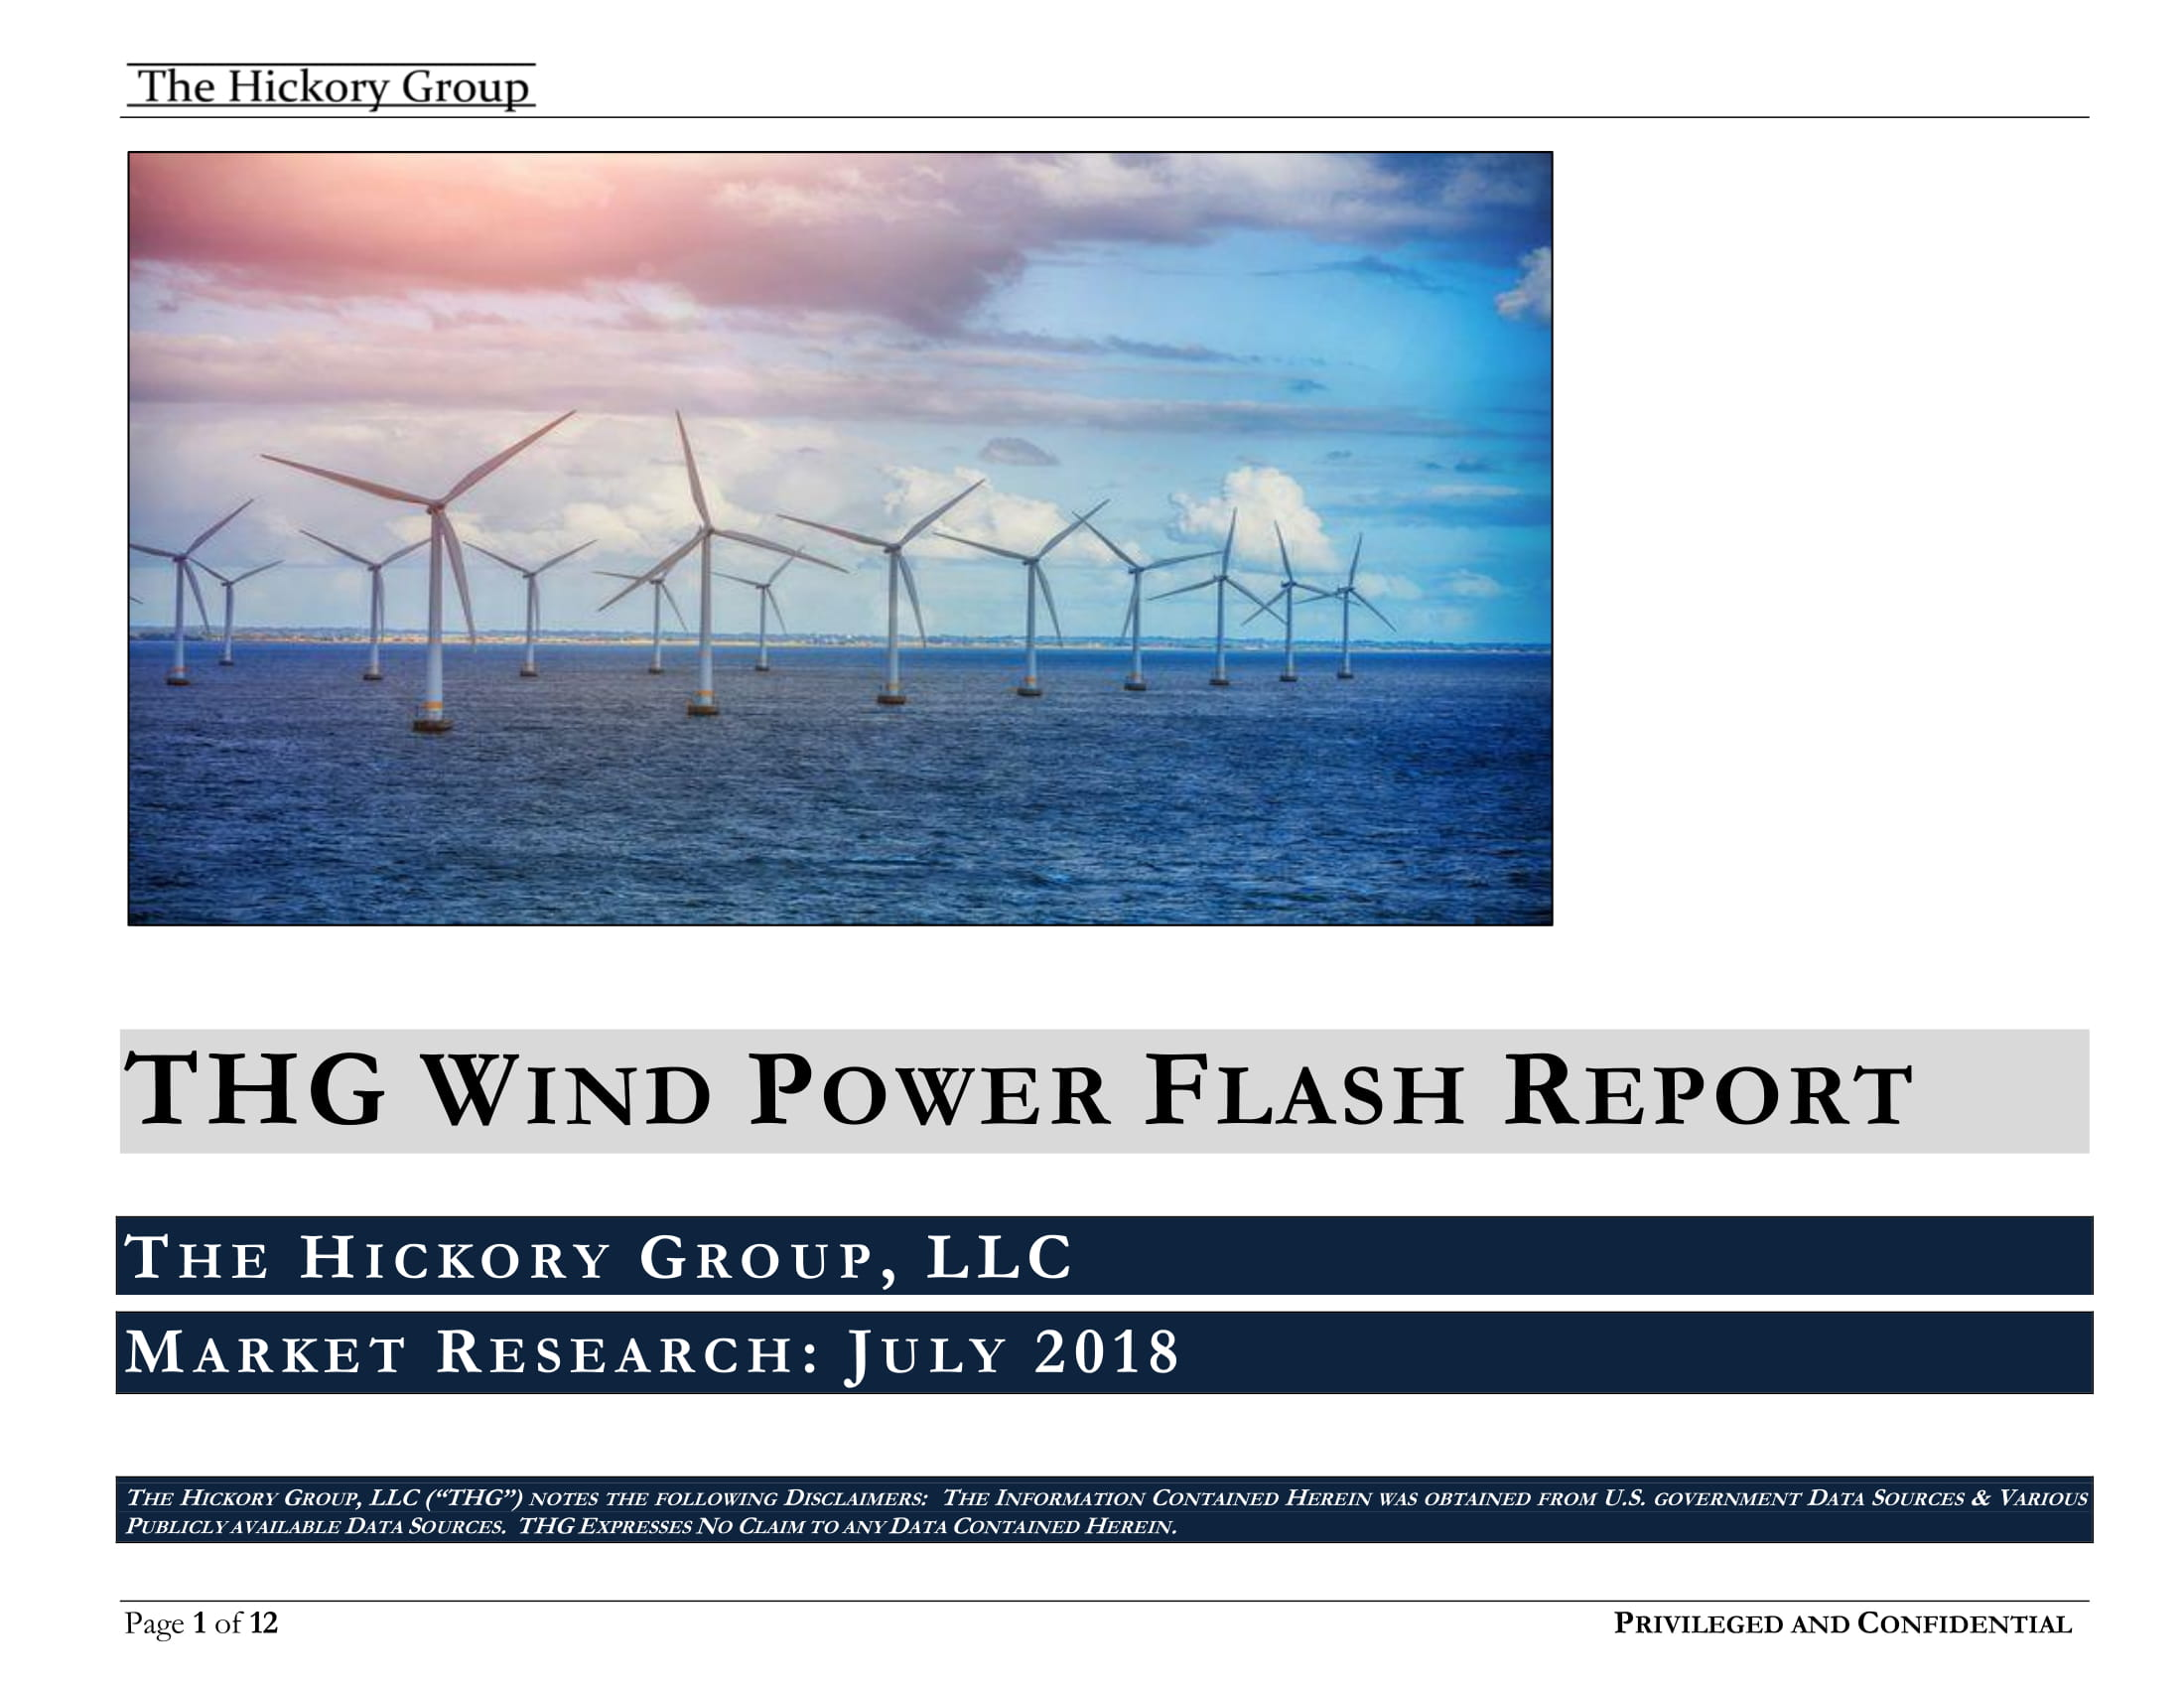 THG Wind Power Flash Report (July 2018) Privileged and Confidential copy[1]-01.jpg